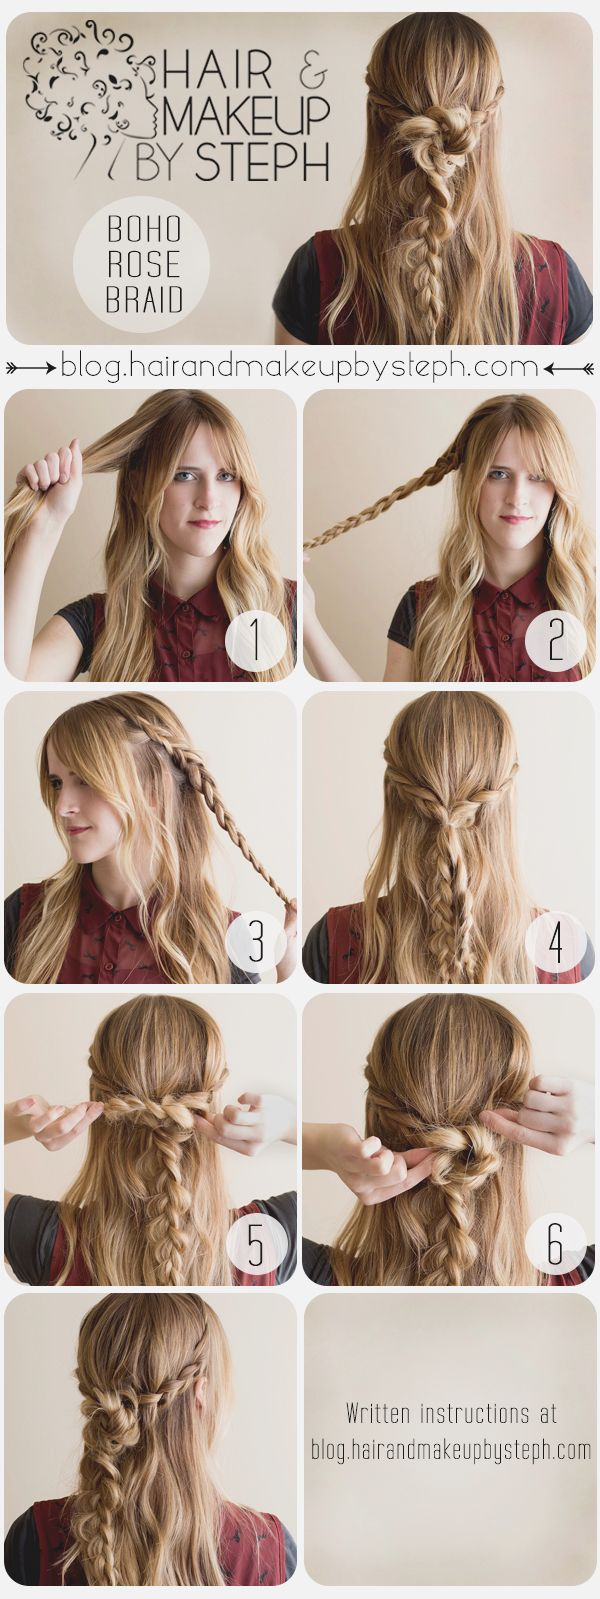 best hairstyles images on pinterest hair ideas hairstyle ideas